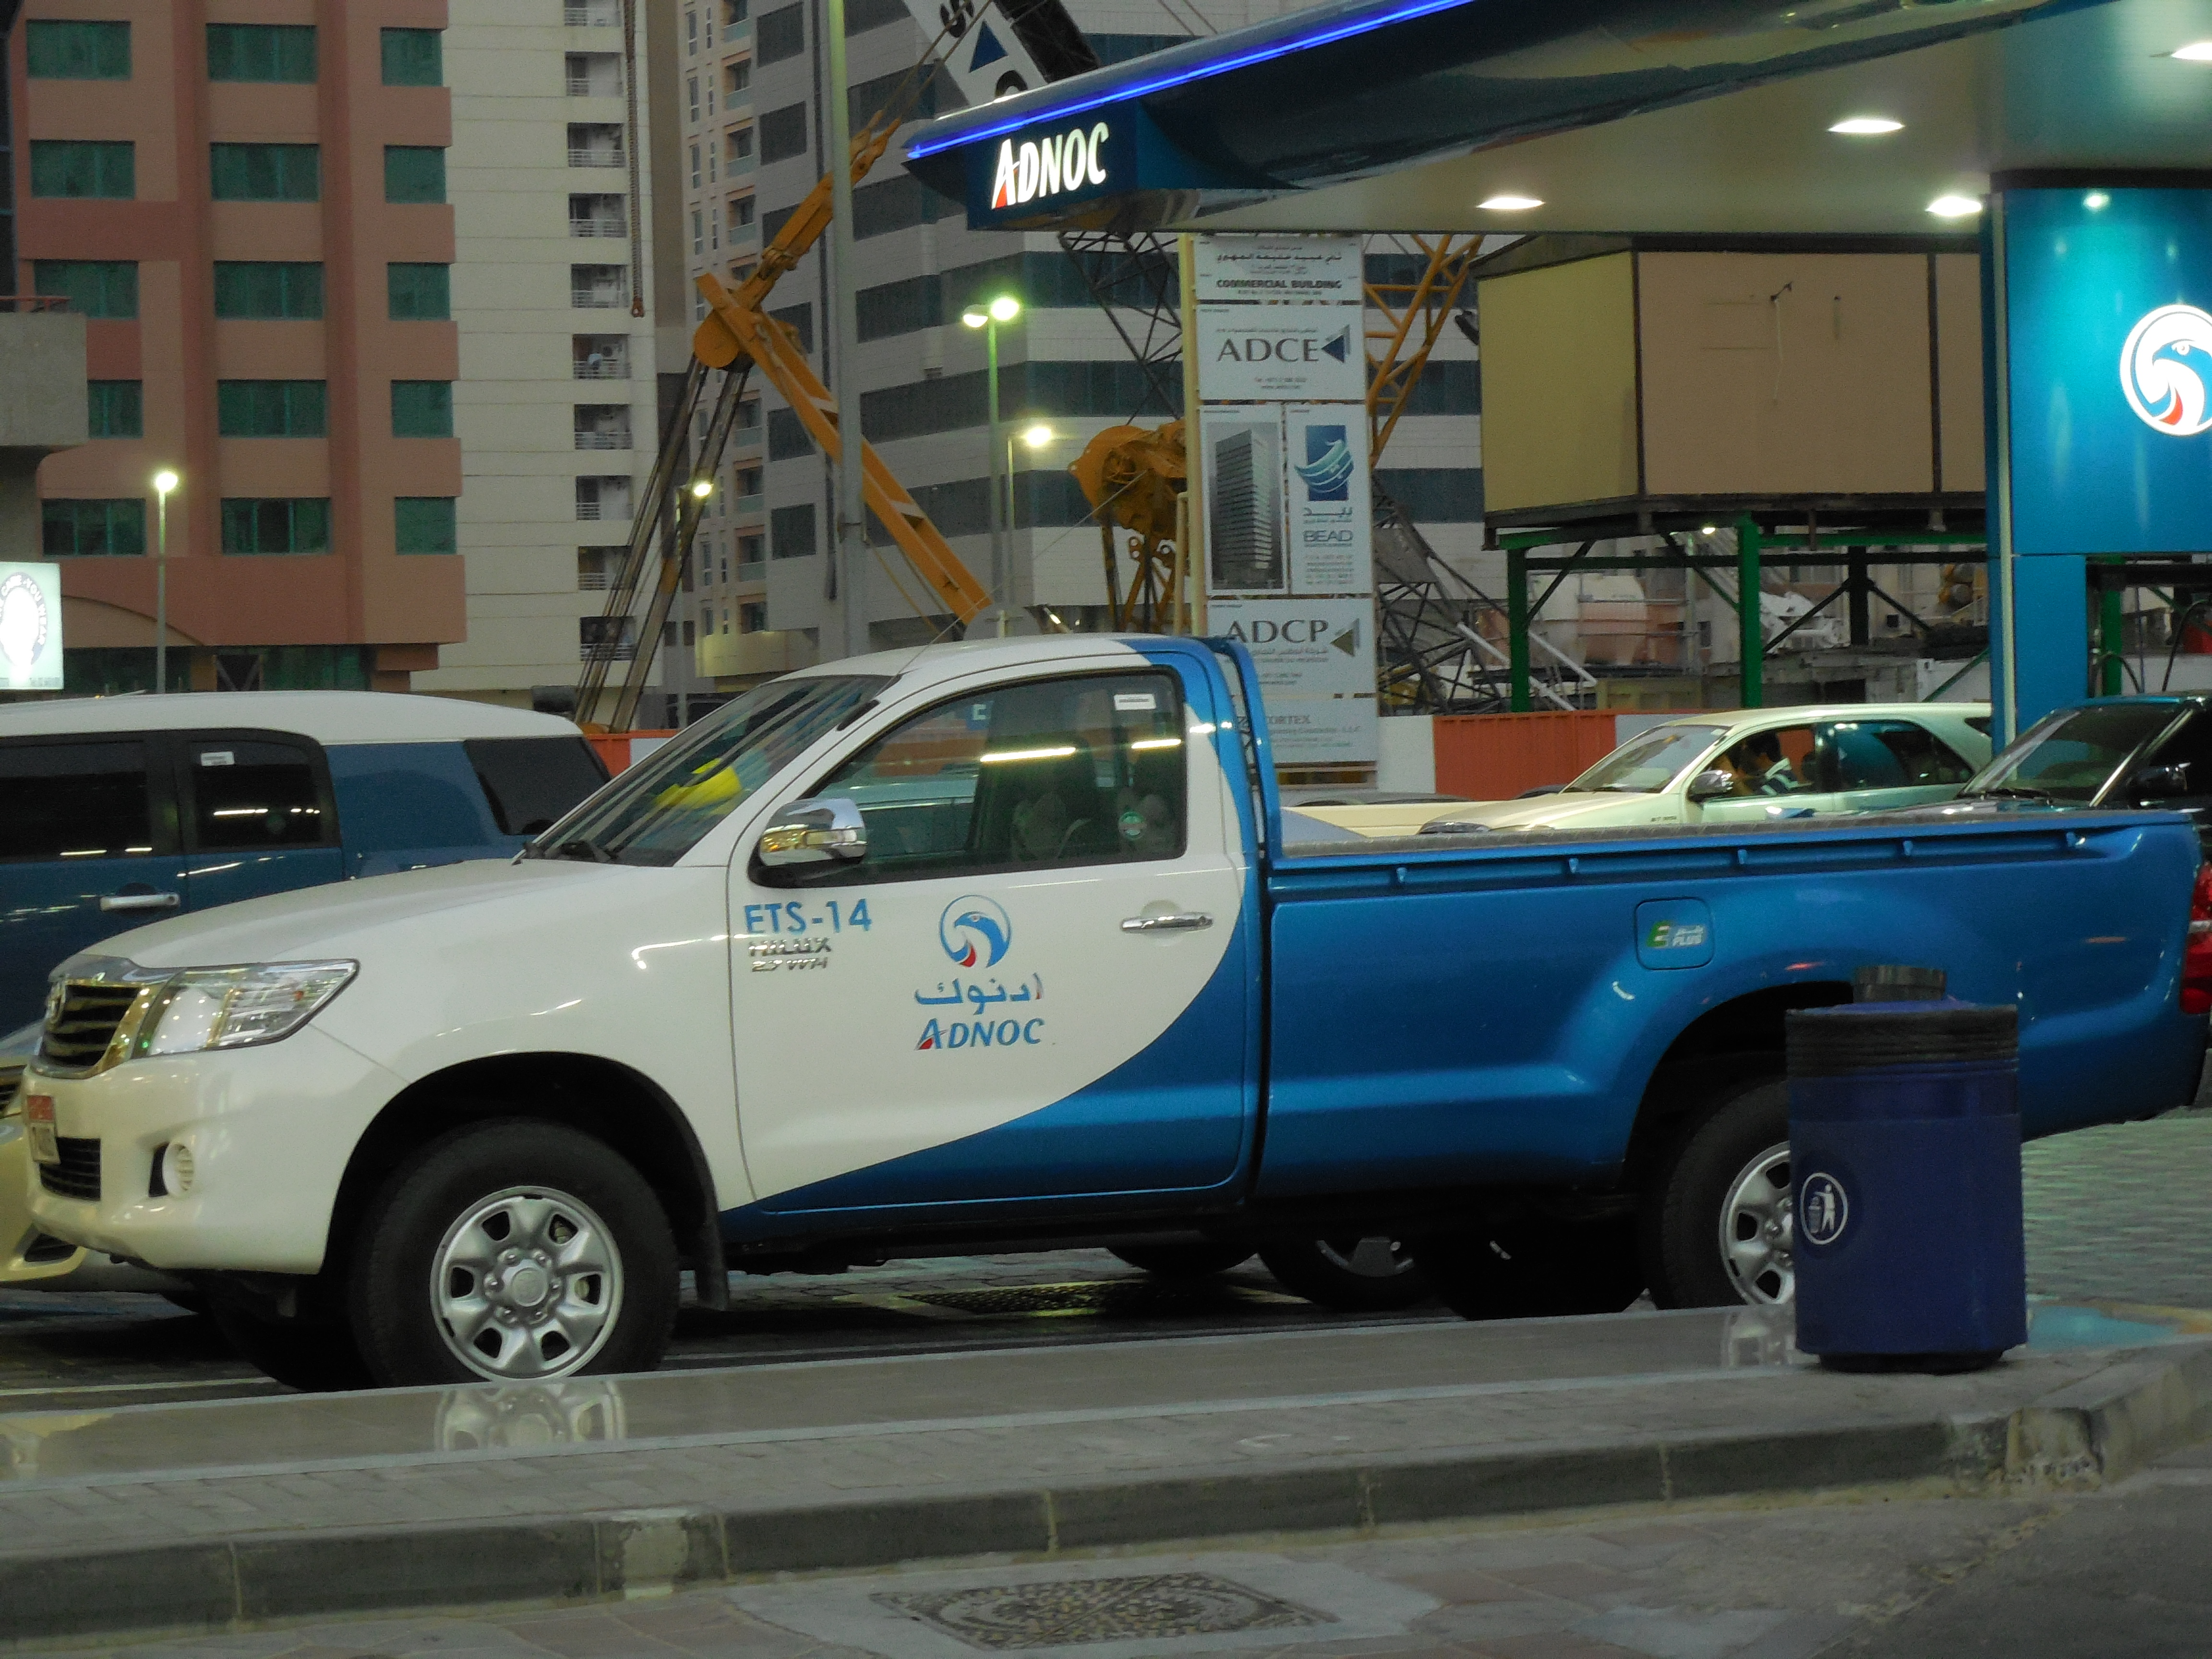 Description Toyota Hilux pickup truck of ADNOC.JPG